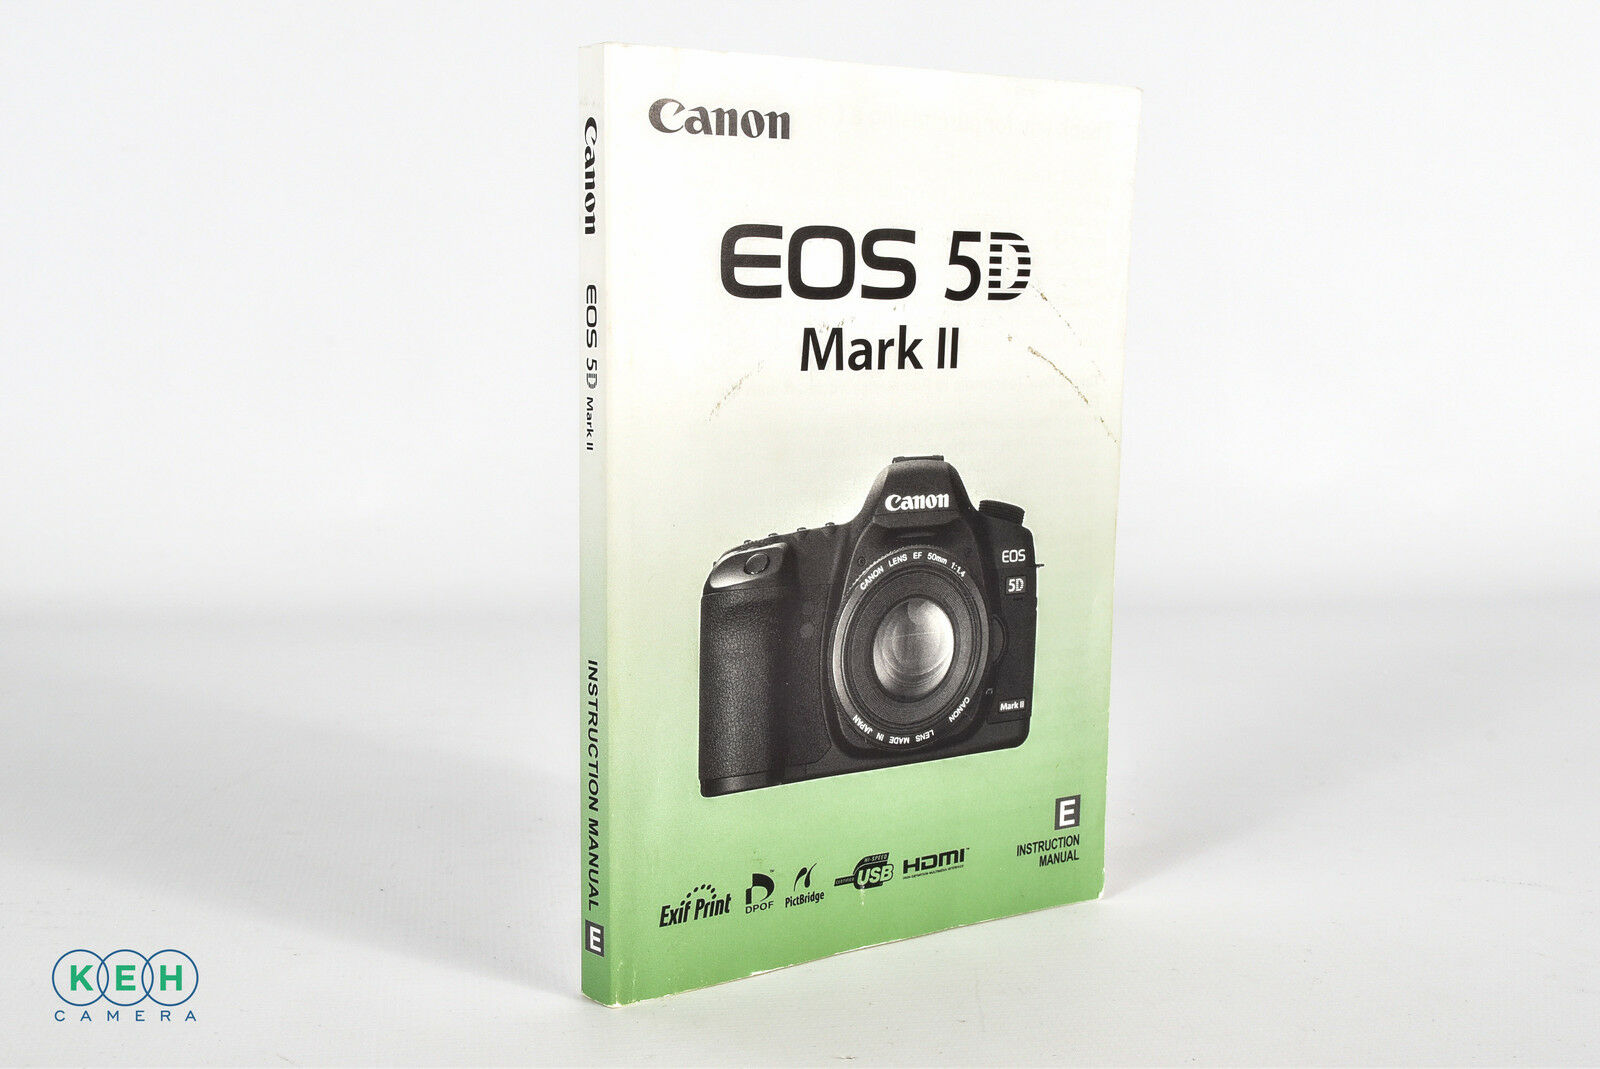 canon 5d mark ii instruction manual 8 99 picclick rh picclick com canon 5d mark ii instruction manual canon 5d mark ii user manual download